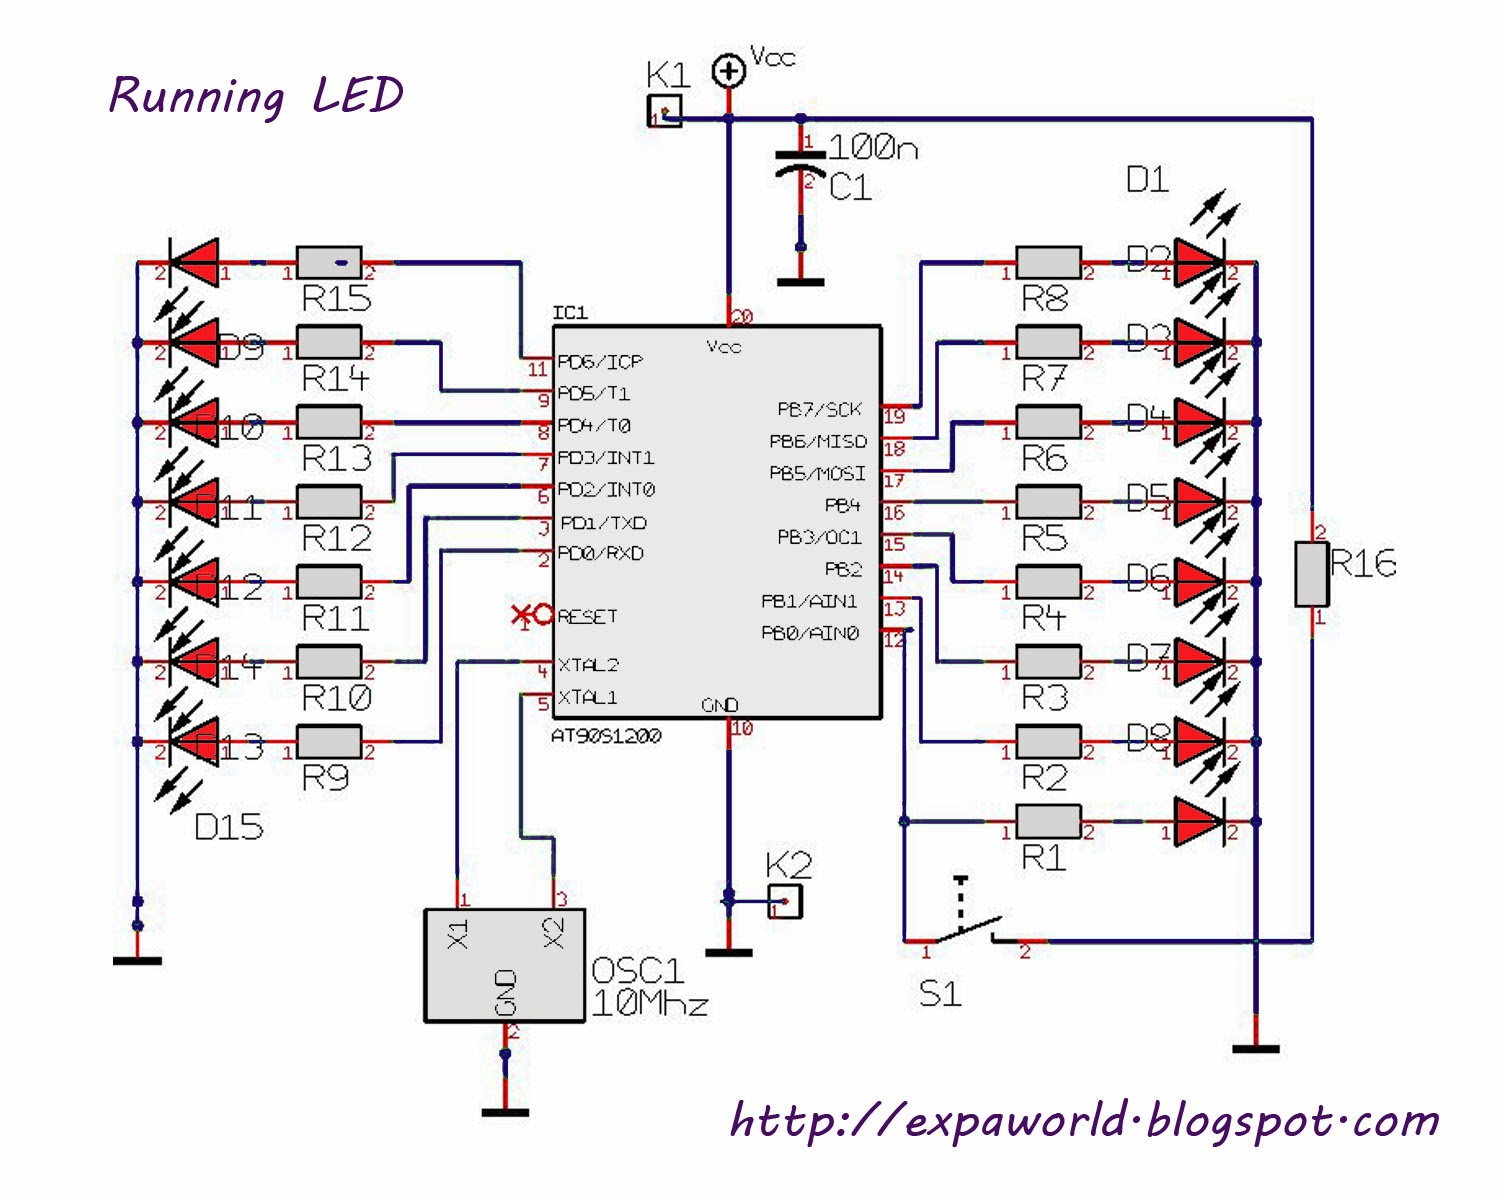 BLOCK DIAGRAM OF LED CHASER